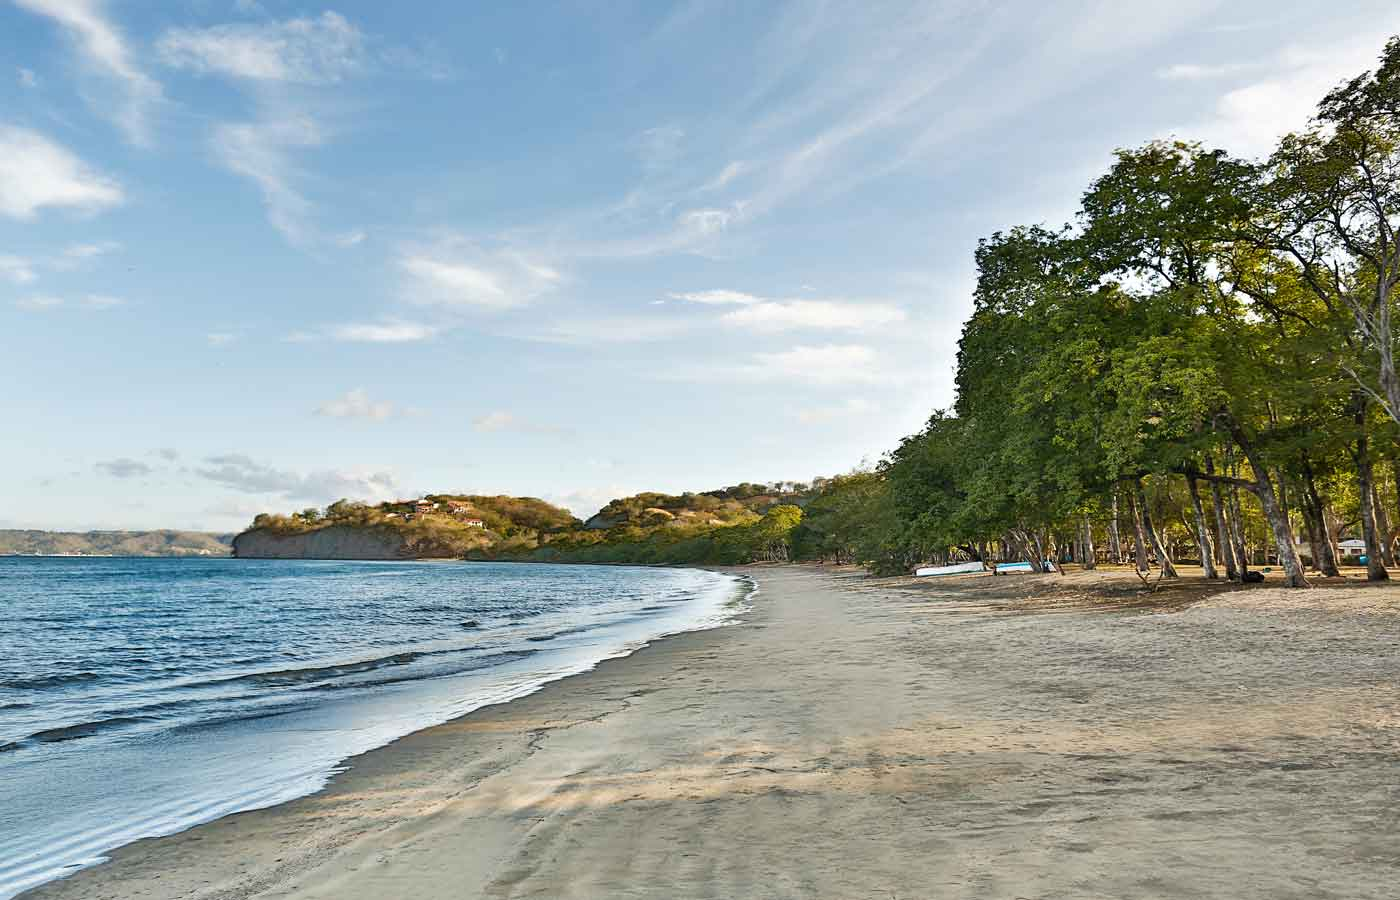 Guanacaste Costa Rica, Papagayo Costa Rica, luxury Costa Rica, tailor-made holidays to Costa Rica, luxury holidays to Costa Rica